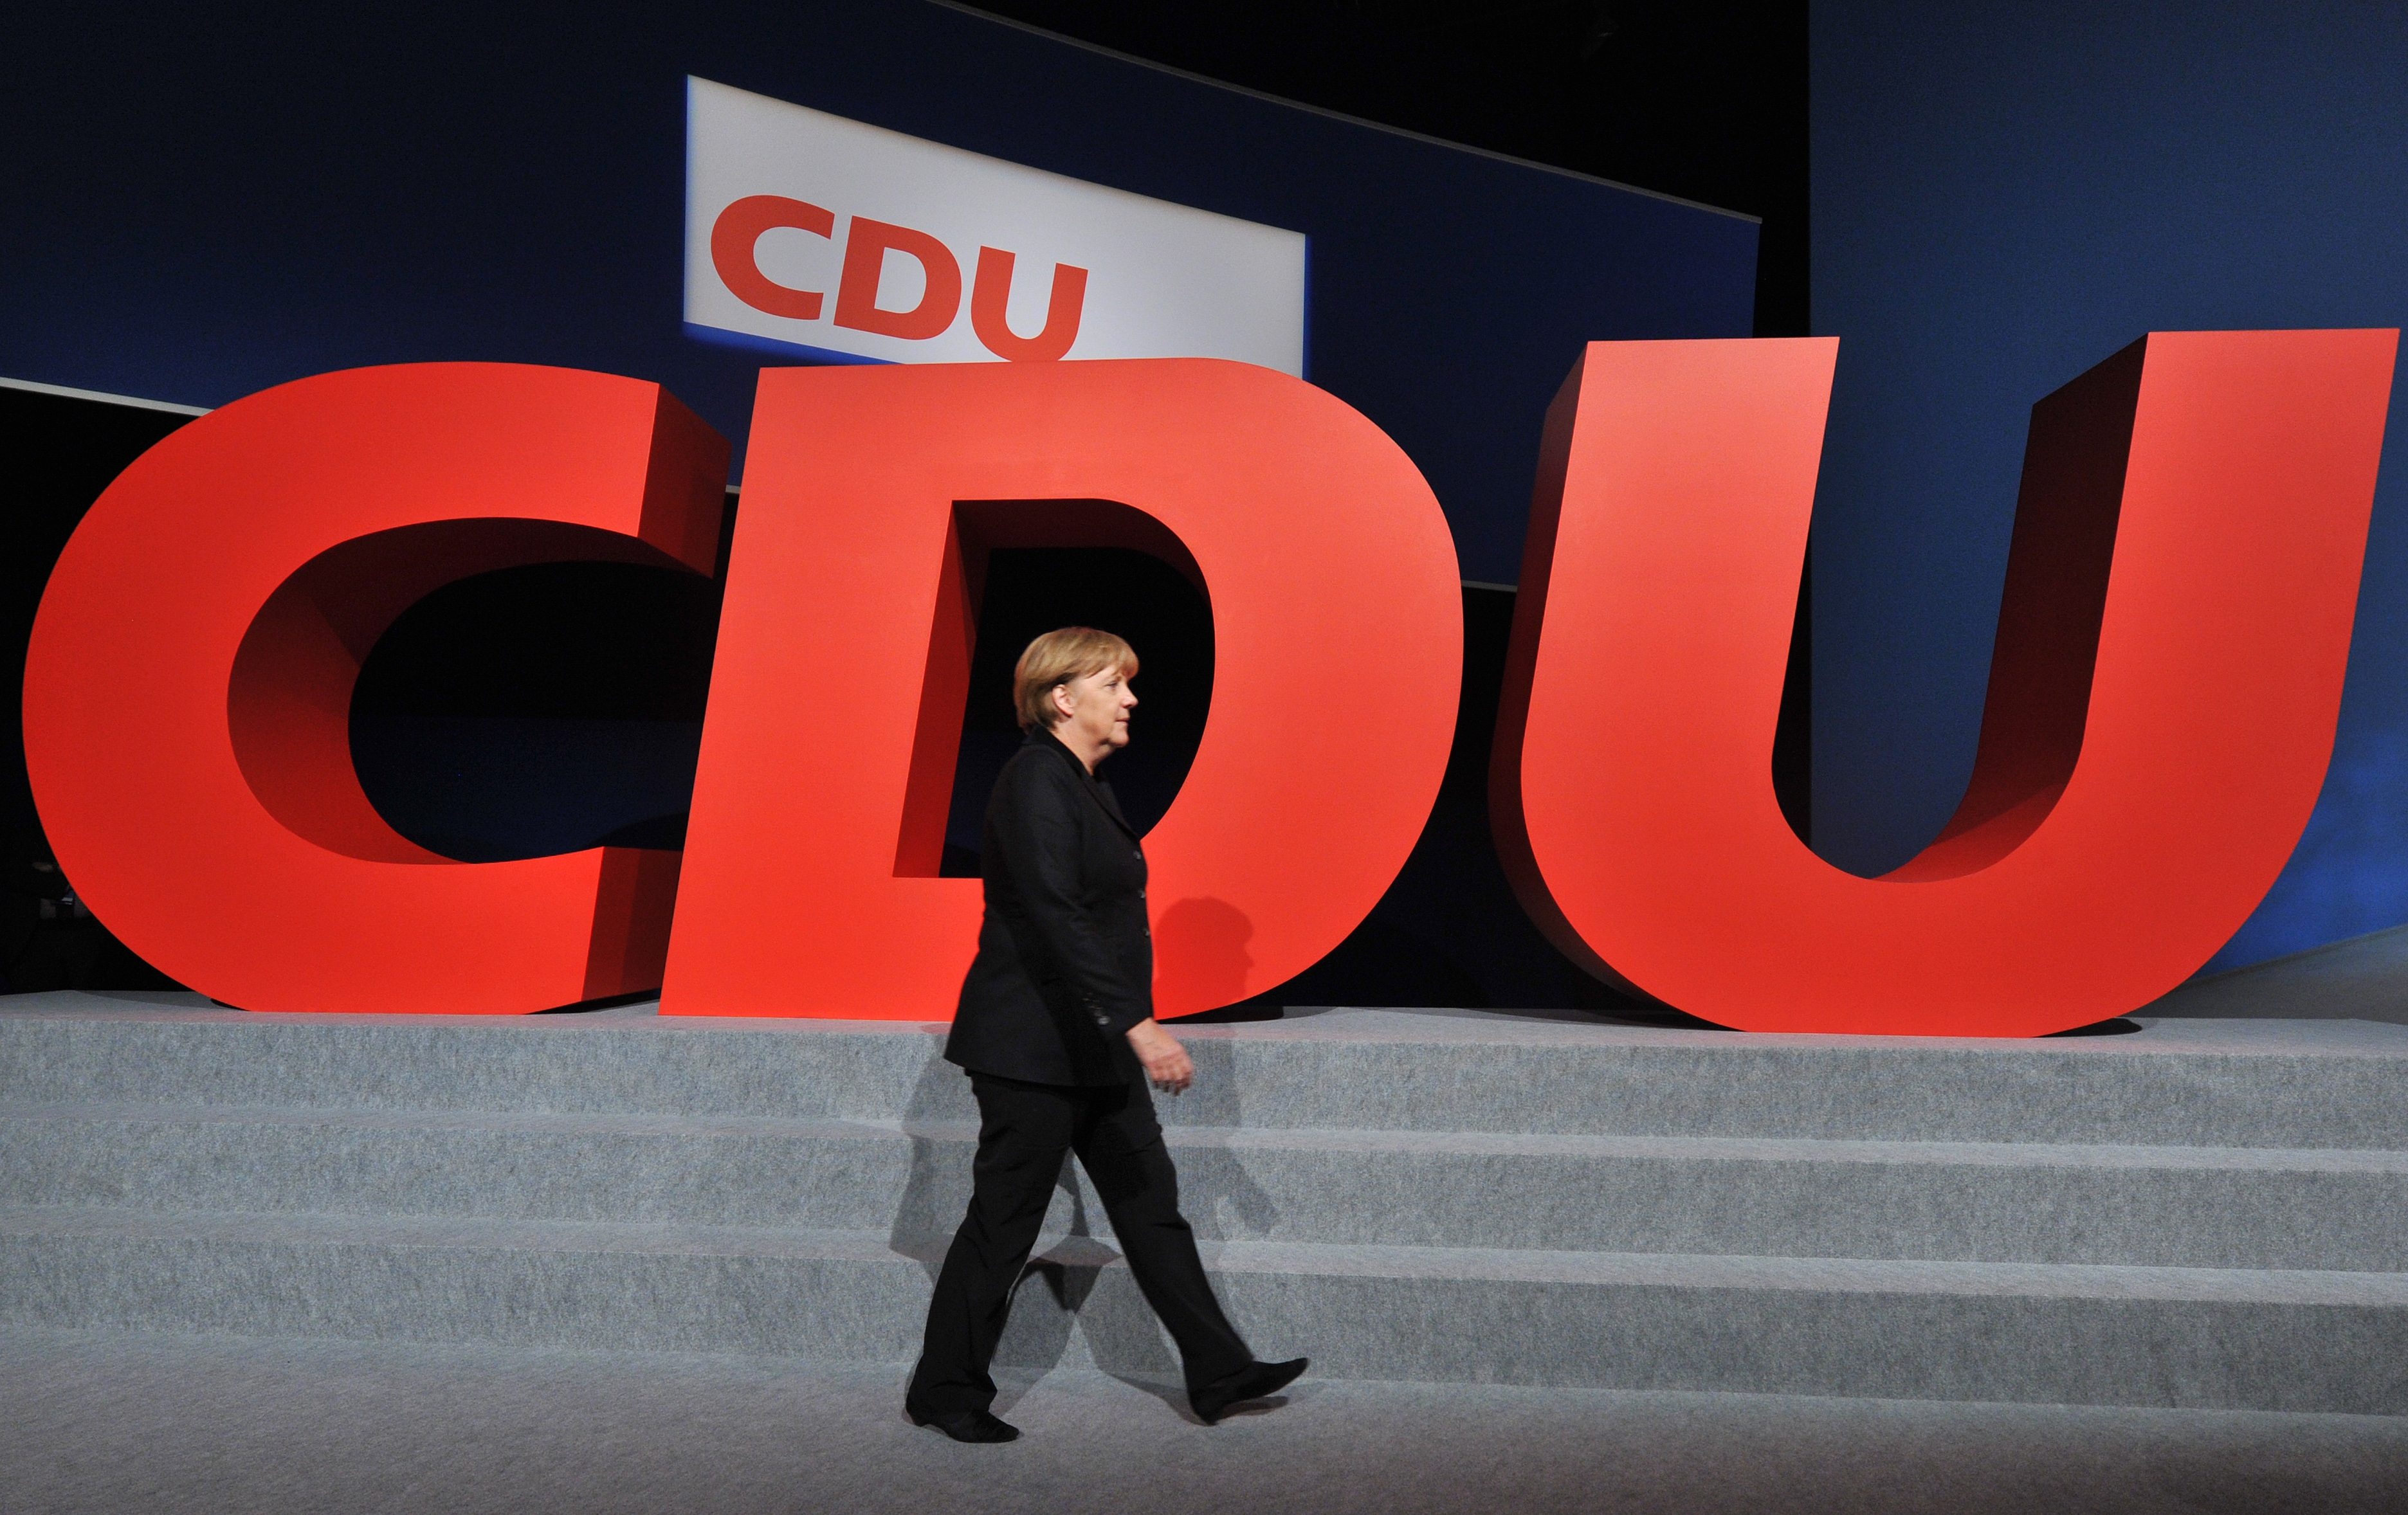 Rebellion Against Merkel: CDU Politicians Are Demanding a Radical Change of Policy